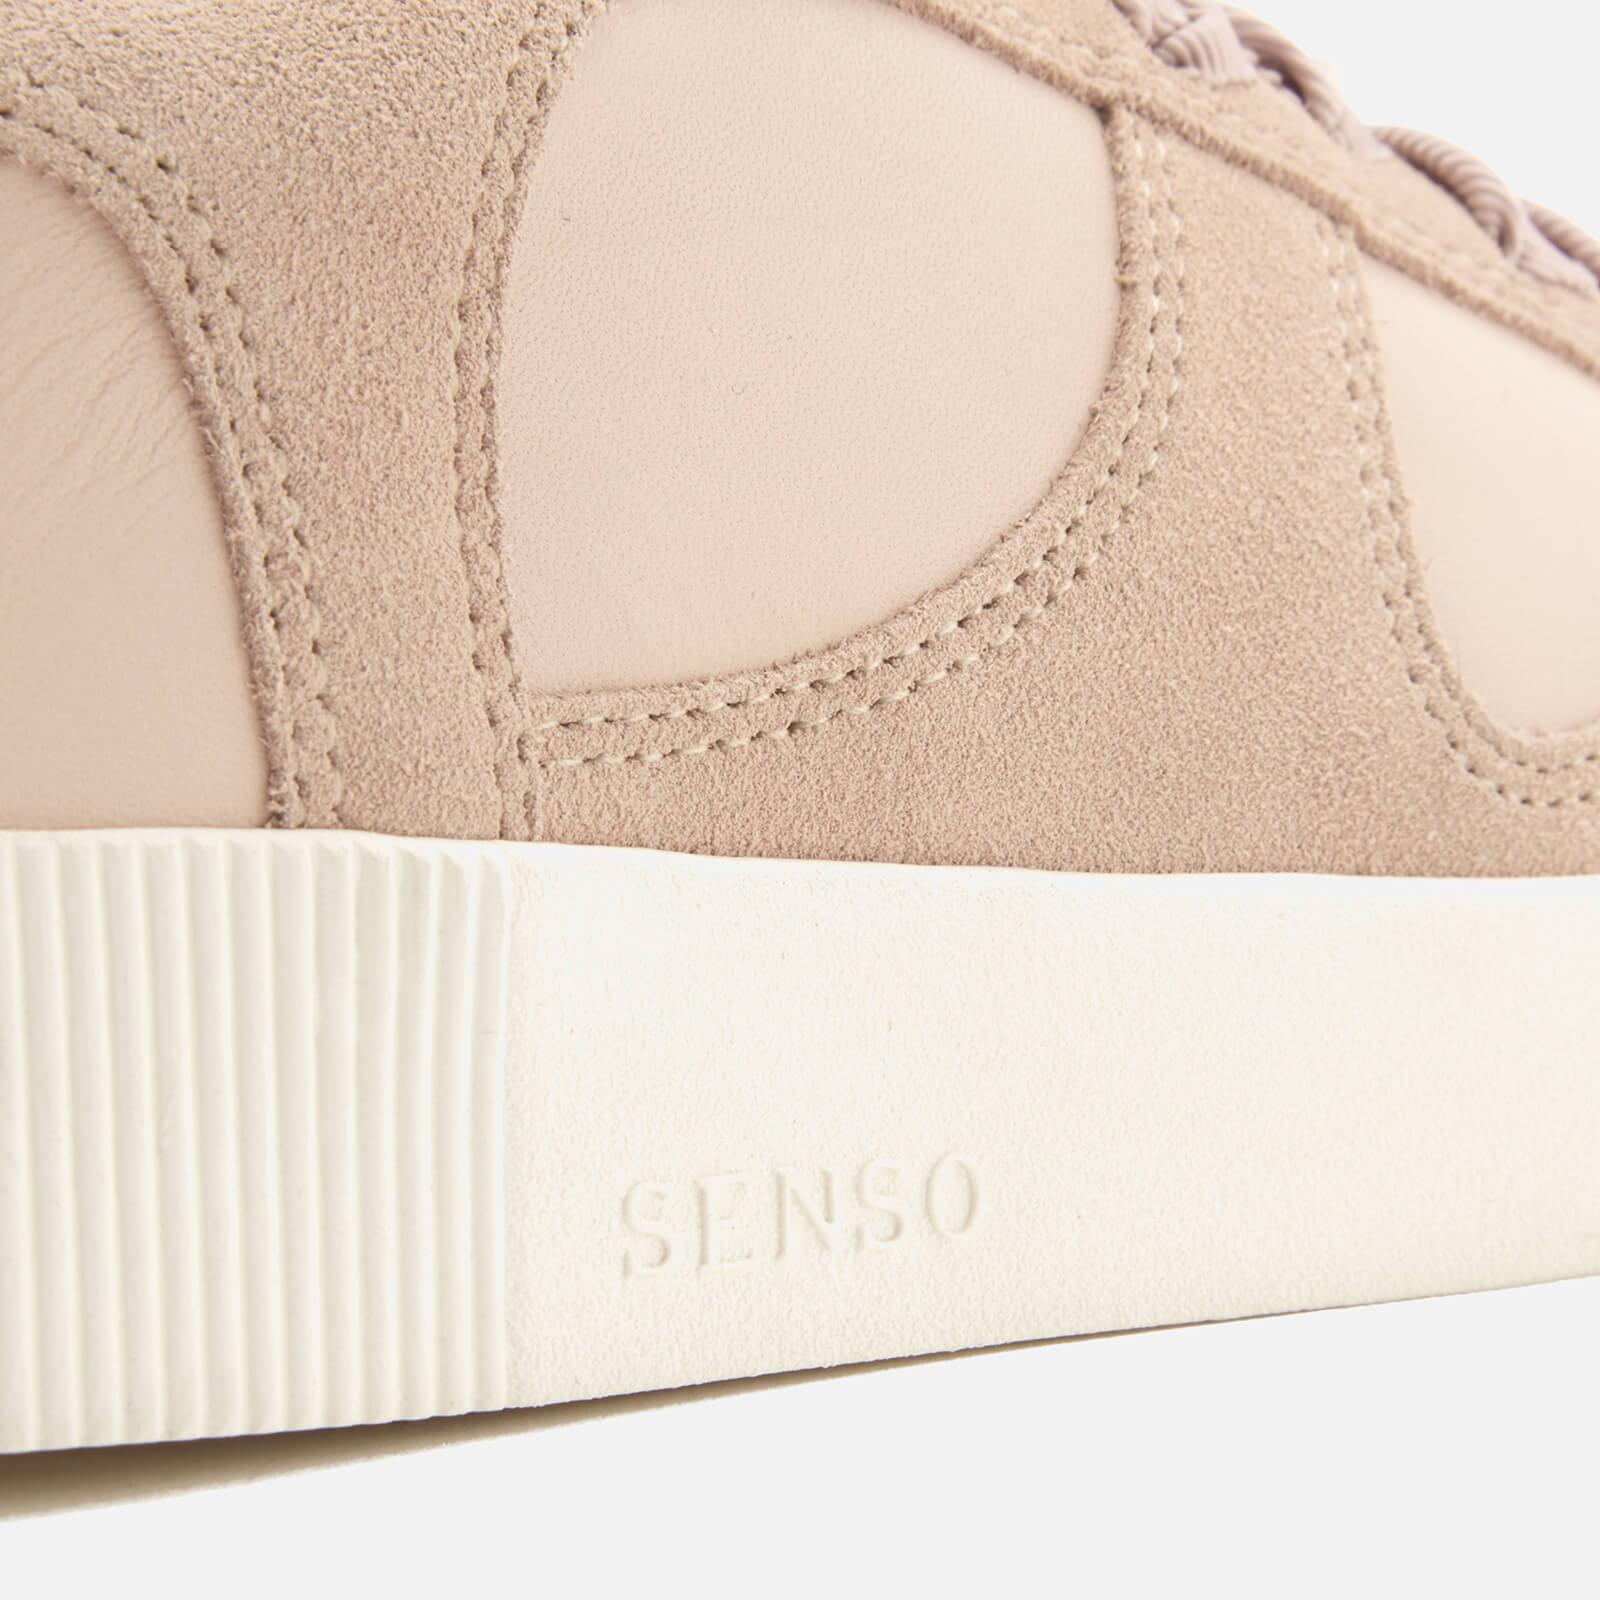 Senso Amelie Leather/suede Low Top Trainers in Nude (Natural)